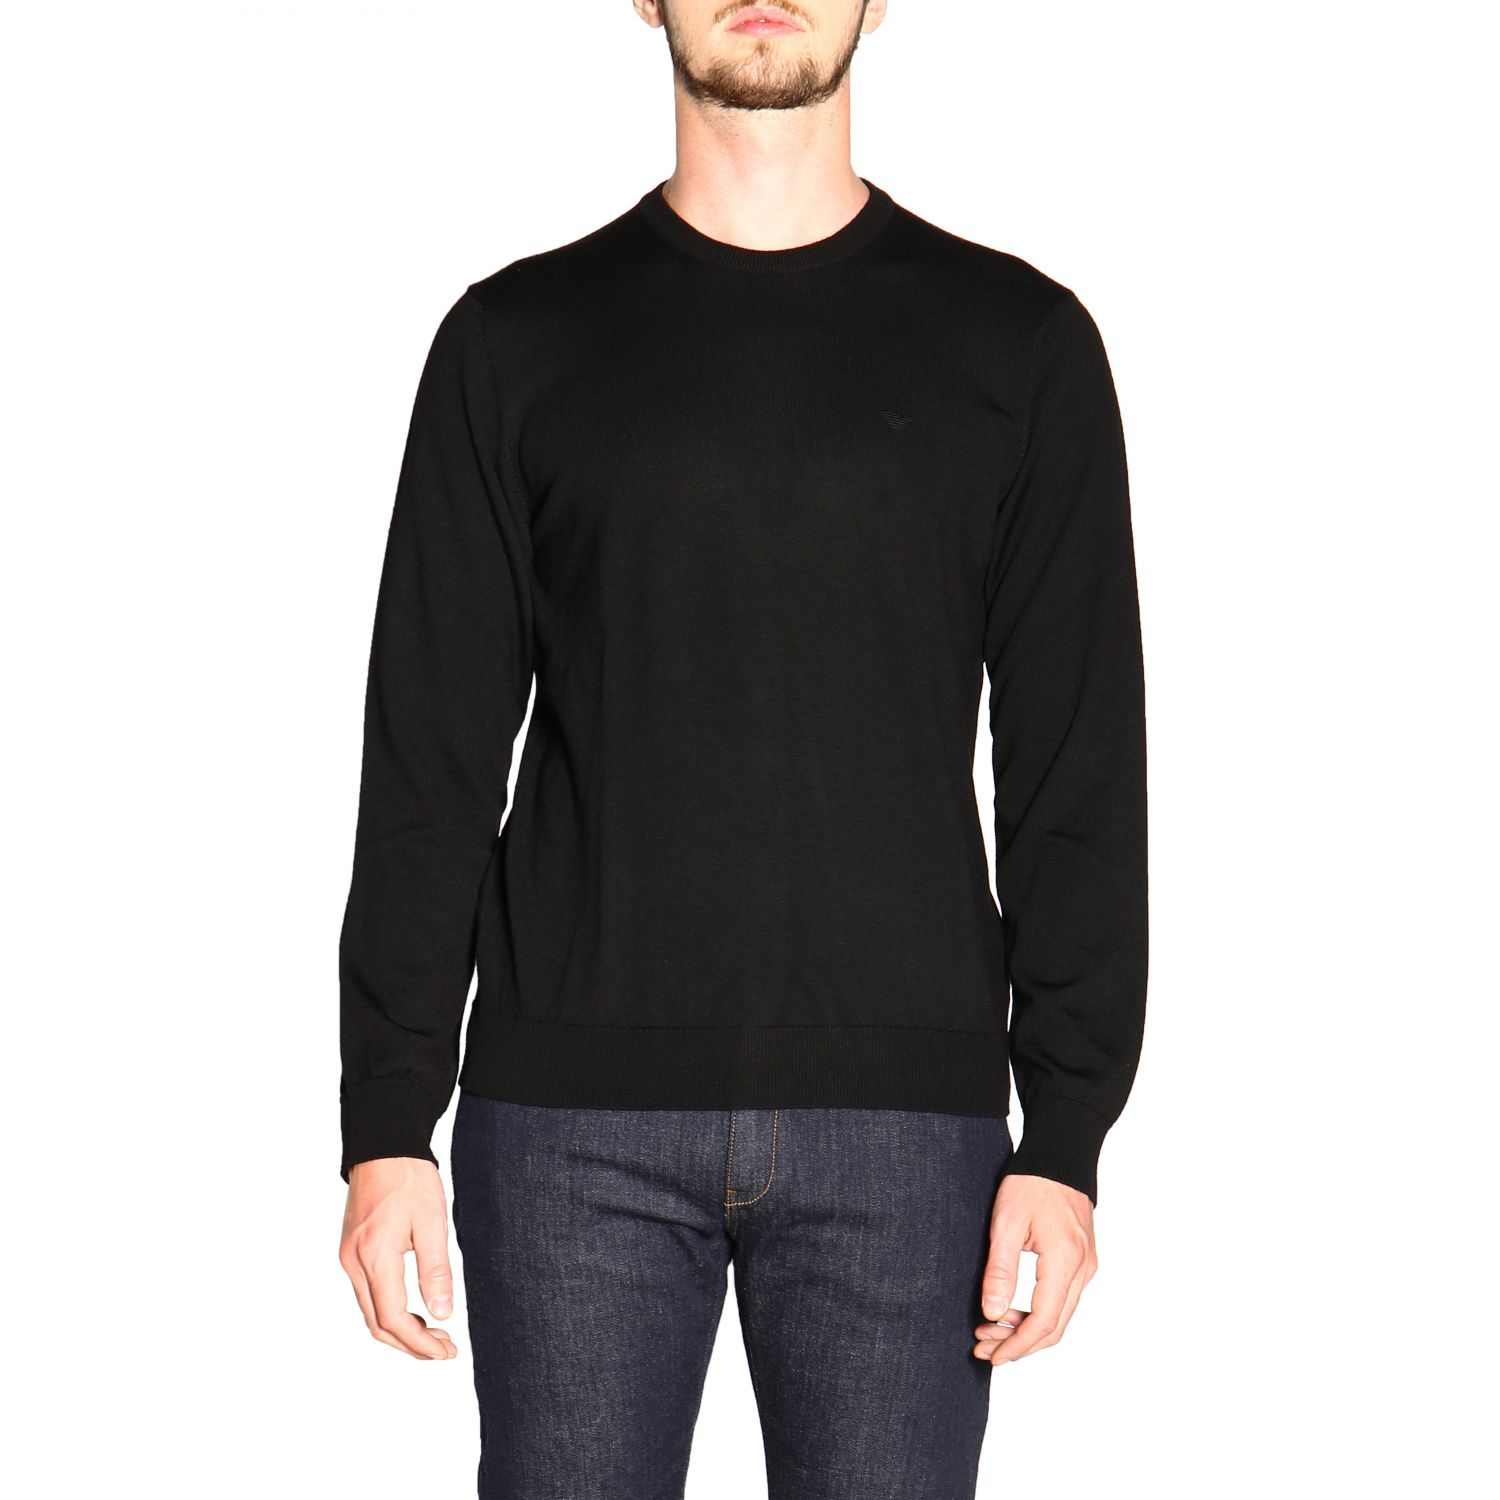 Emporio Armani long-sleeved crew neck sweater in wool black 1